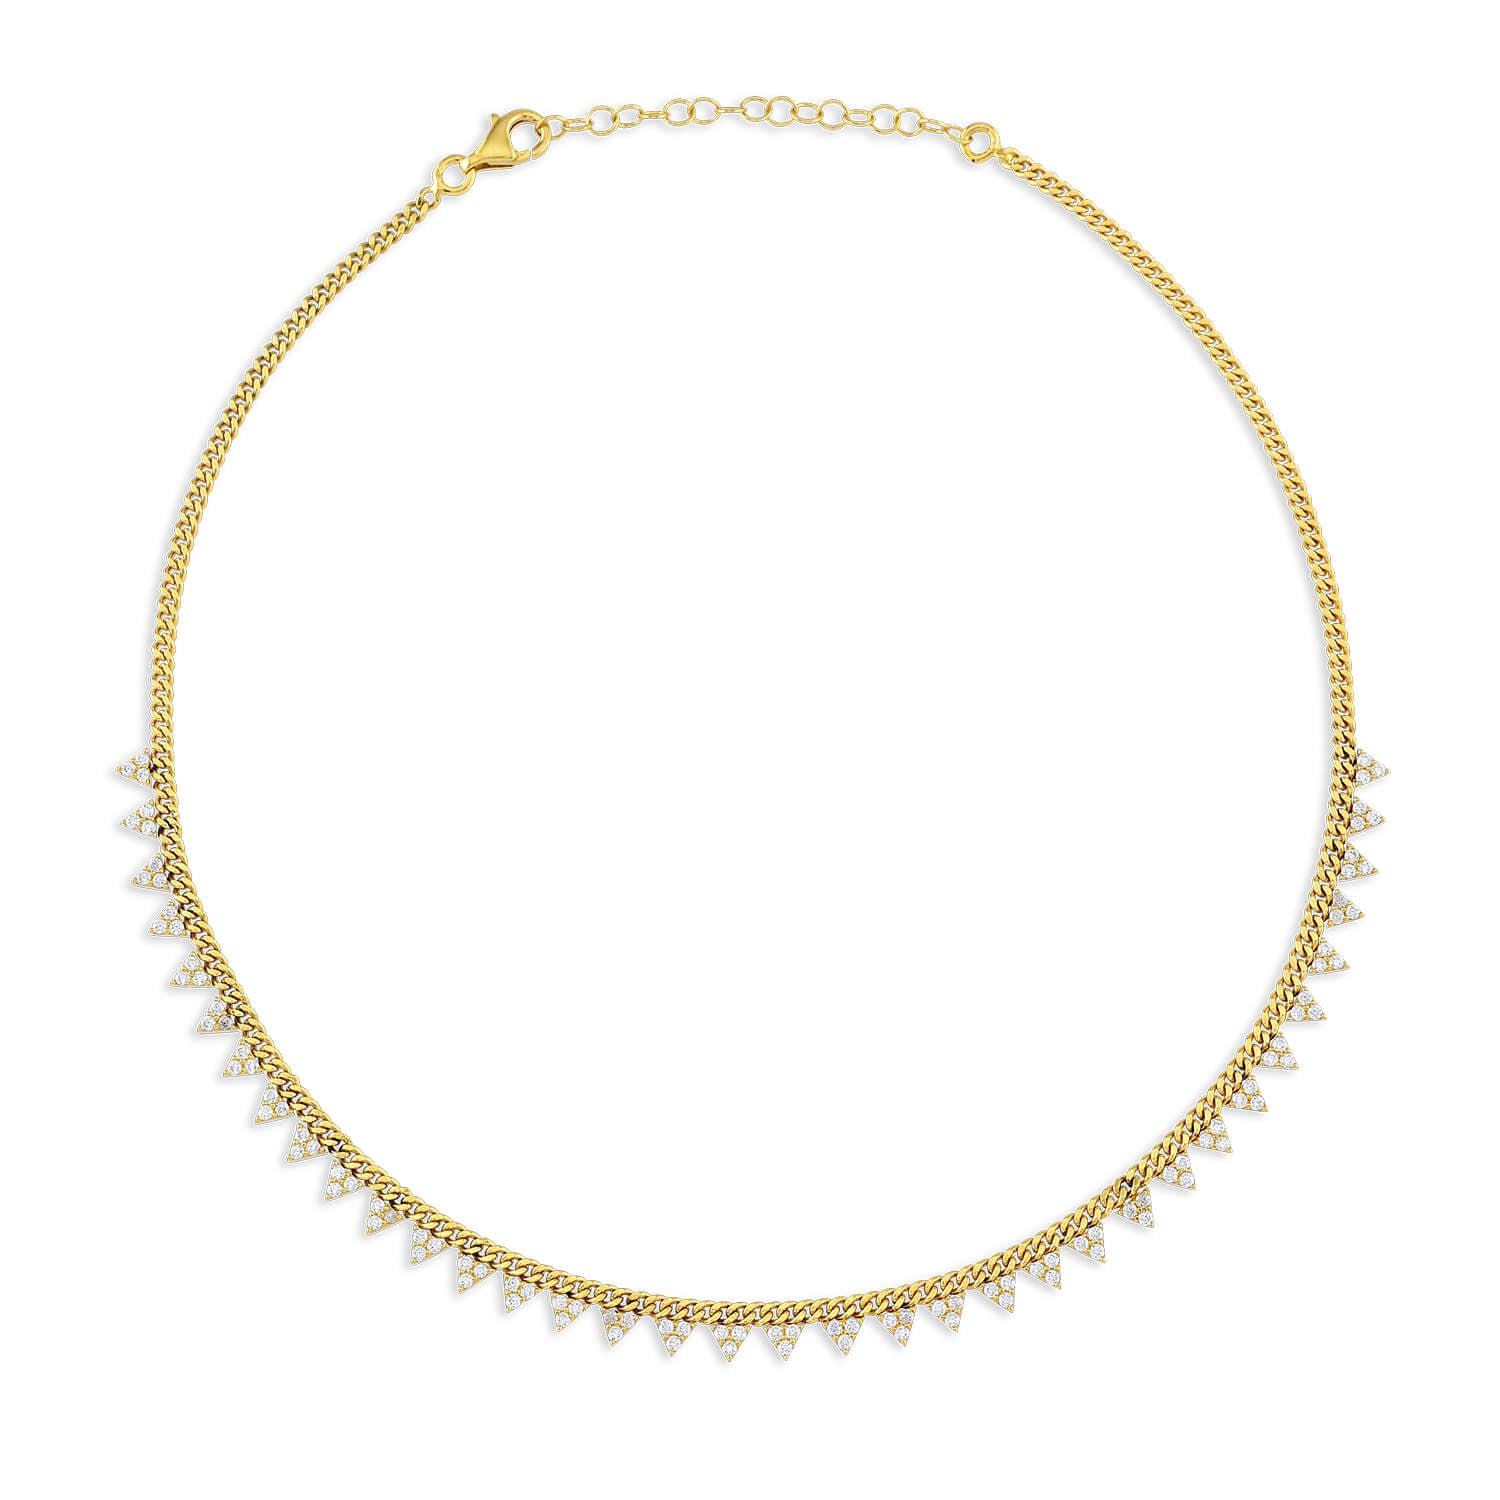 ALKA CHAIN NECKLACE